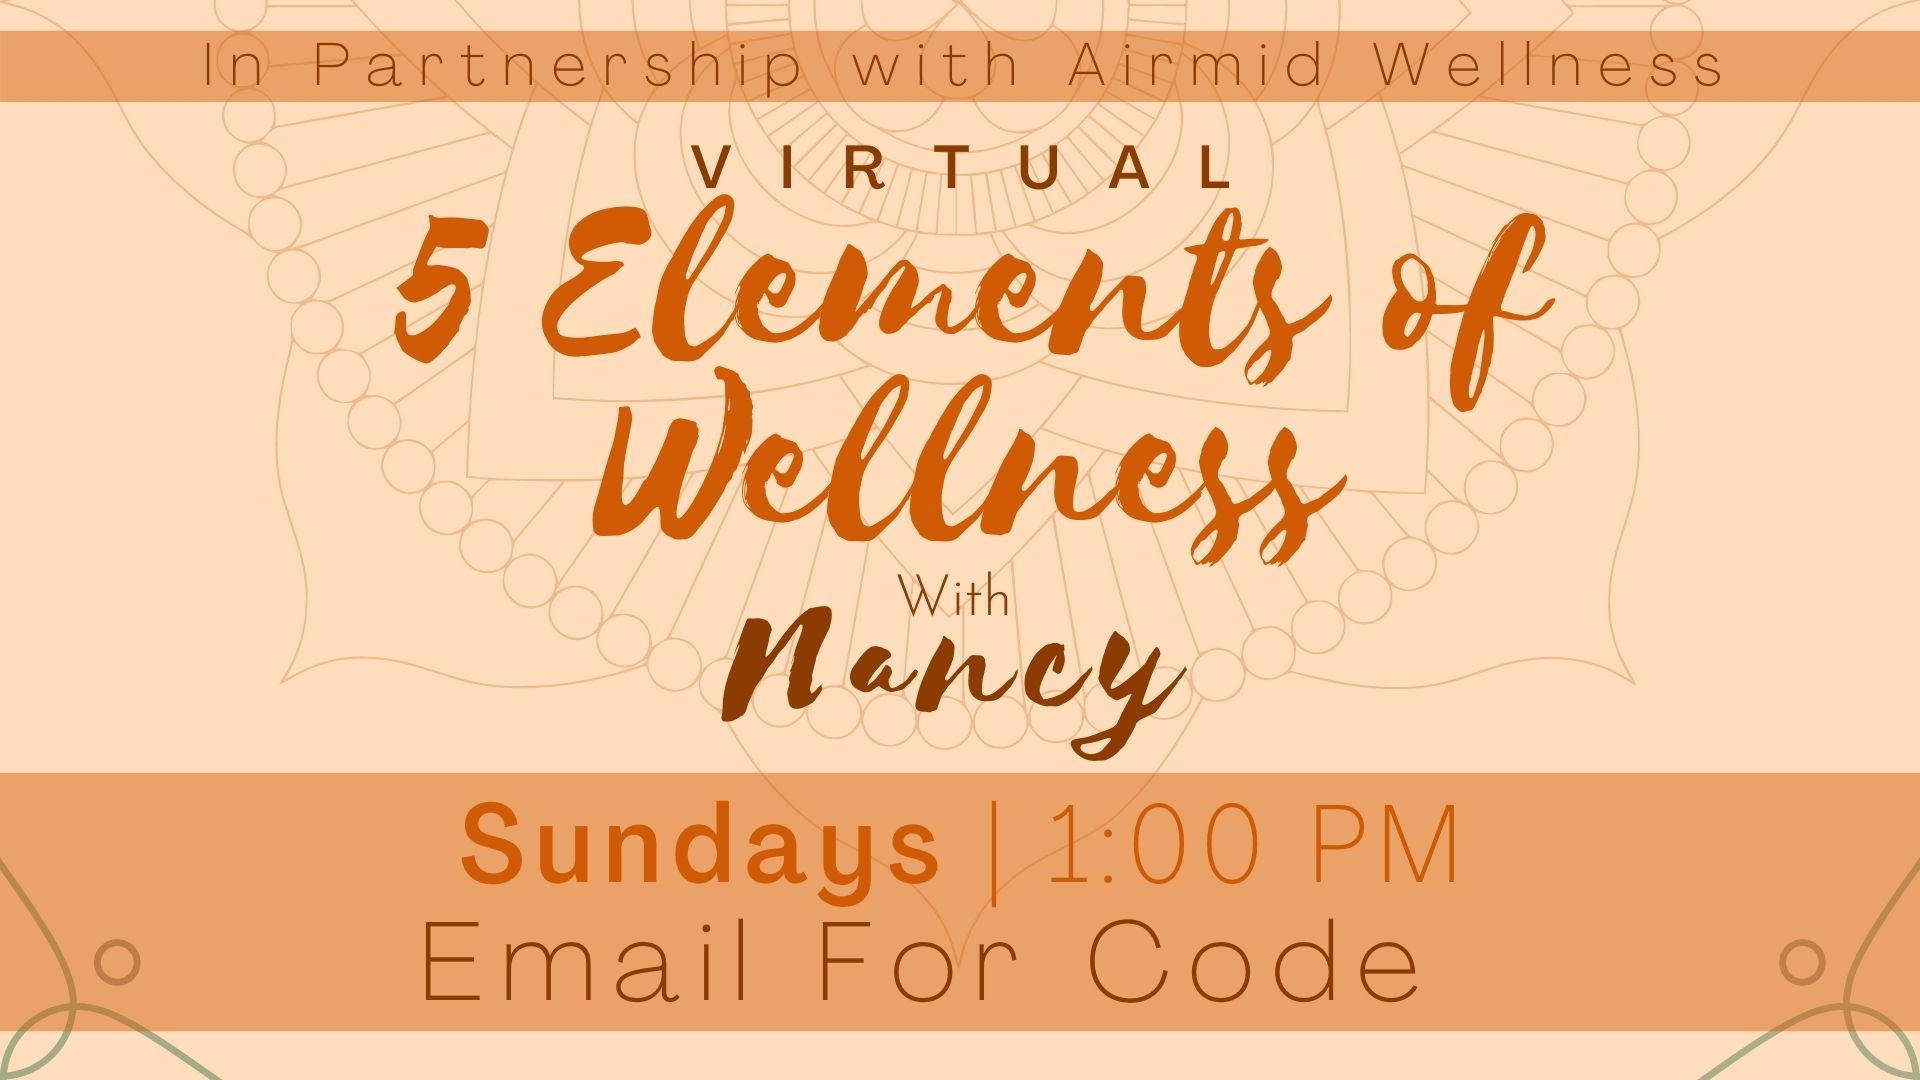 5 Elements of Wellness with Nancy